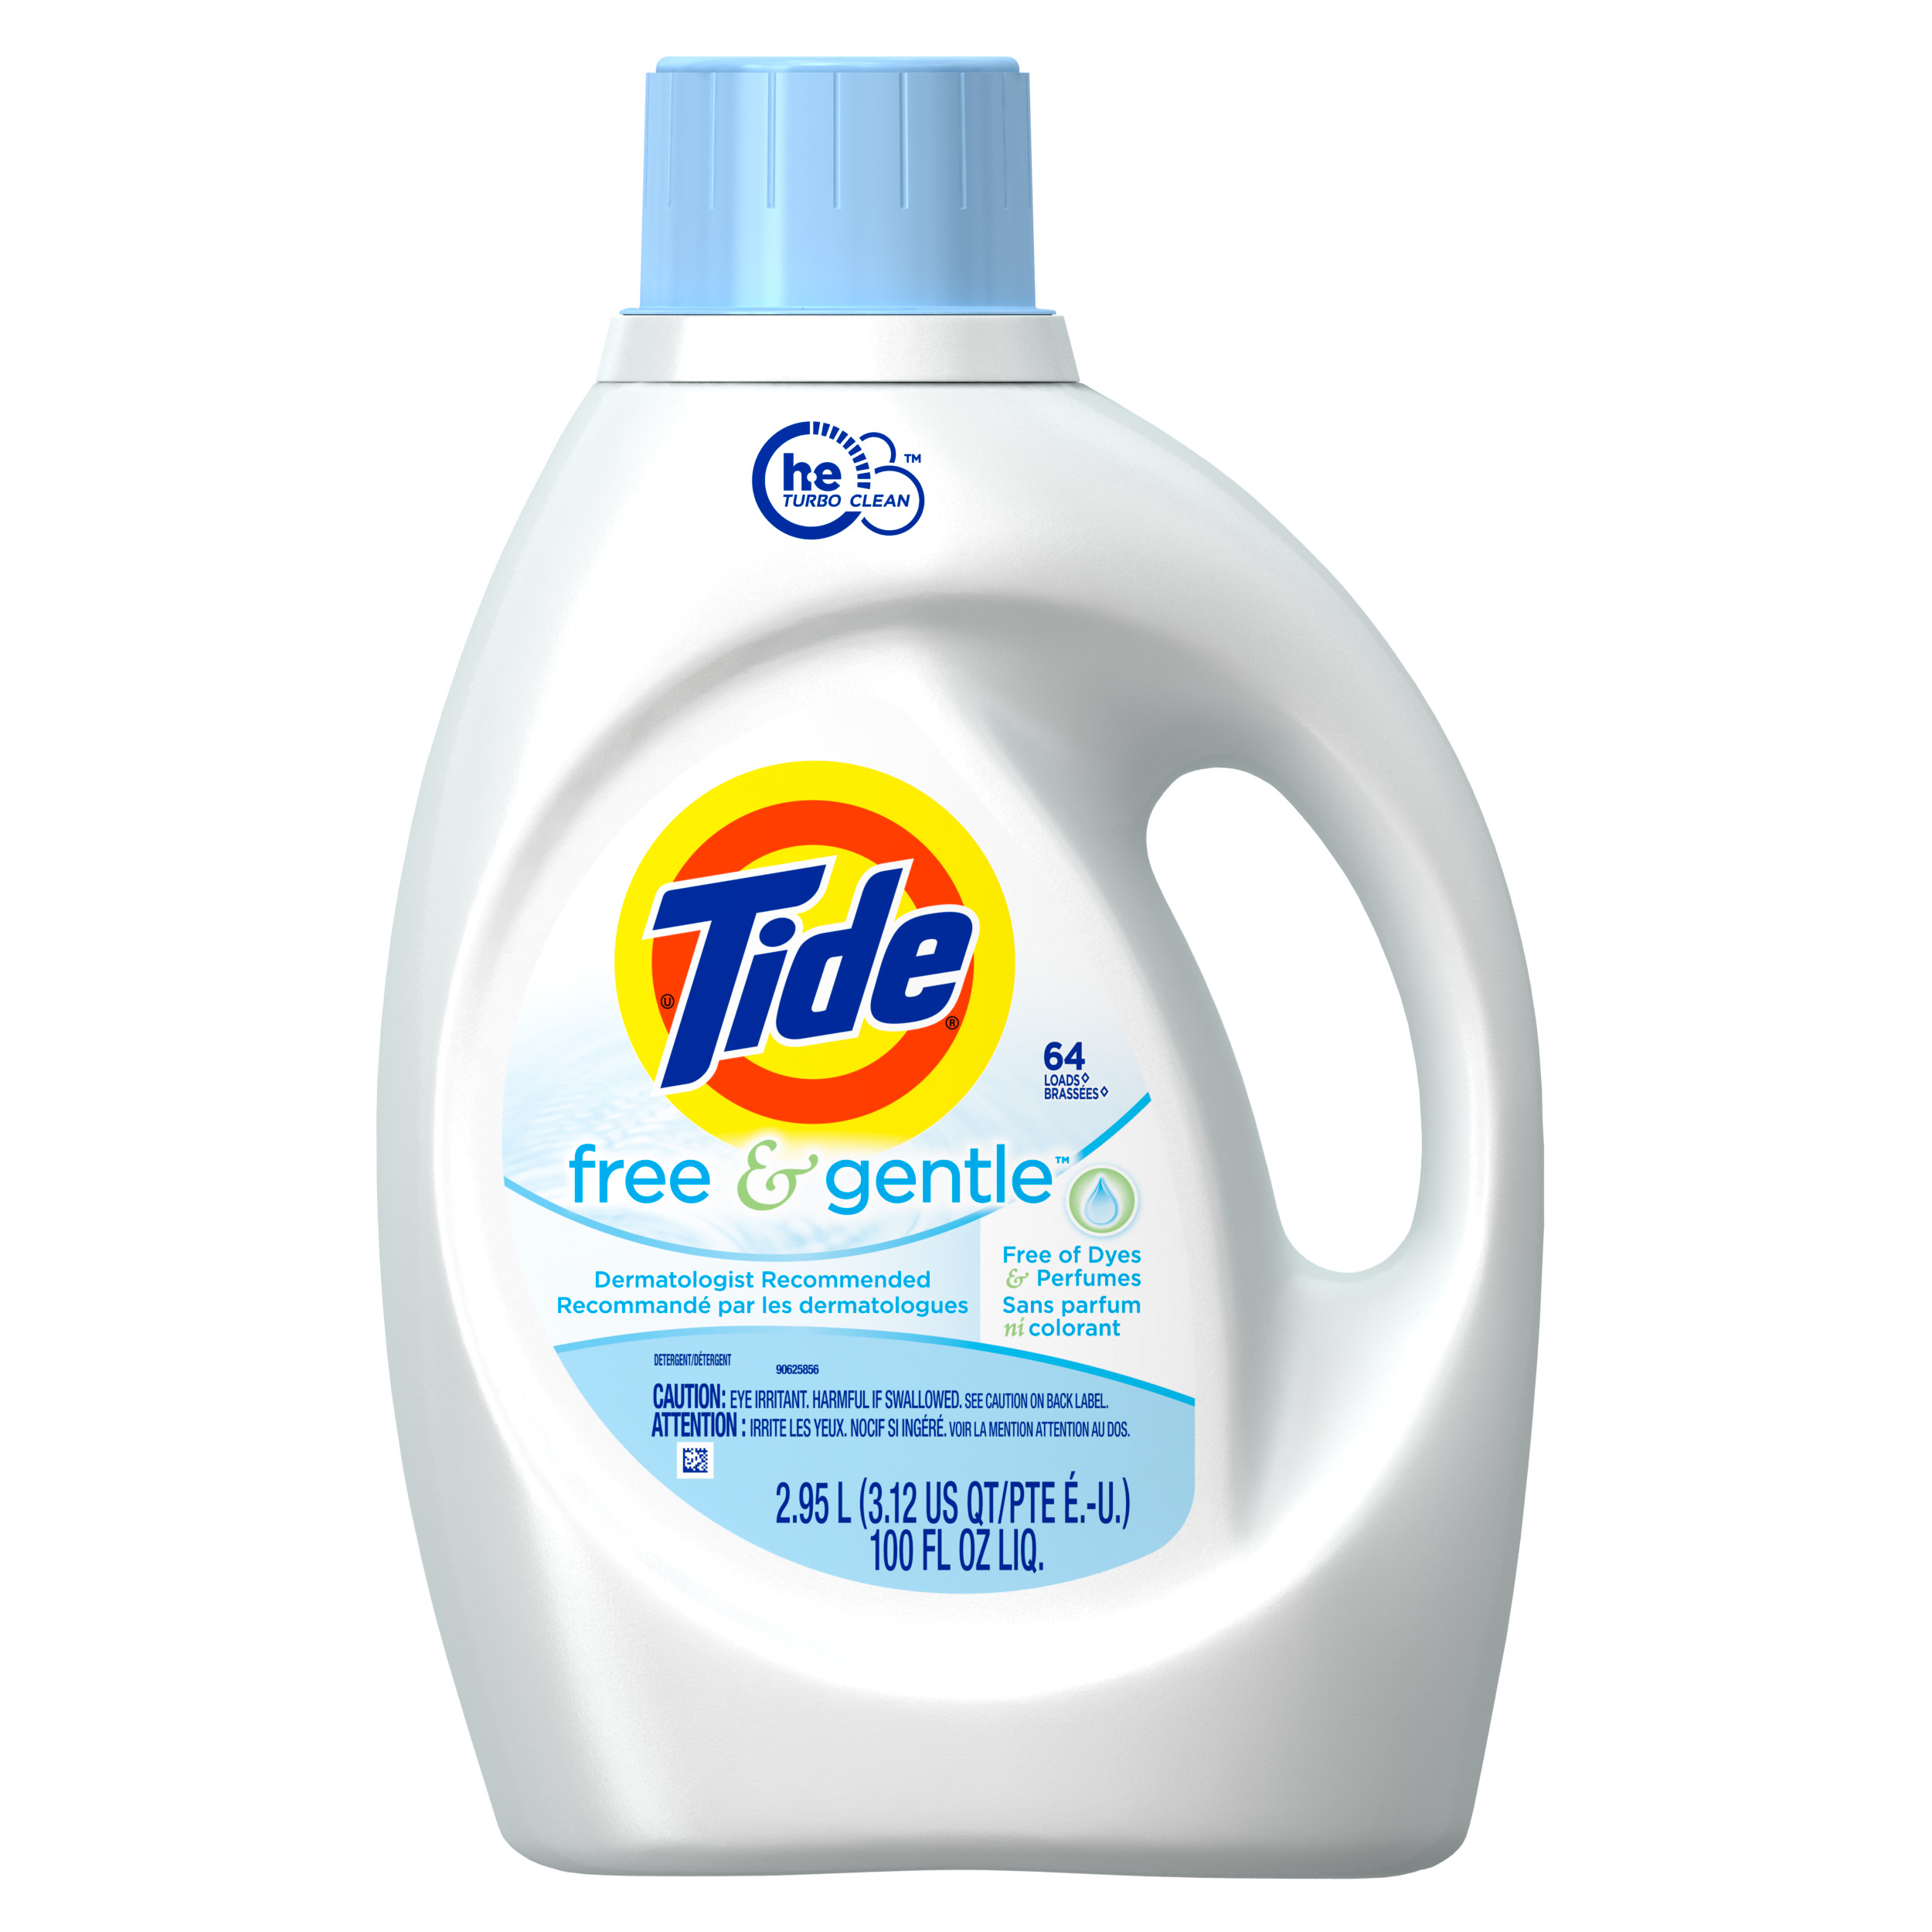 Tide HE Turbo Clean Free and Gentle Liquid Laundry Detergent 100 oz 64 Loads